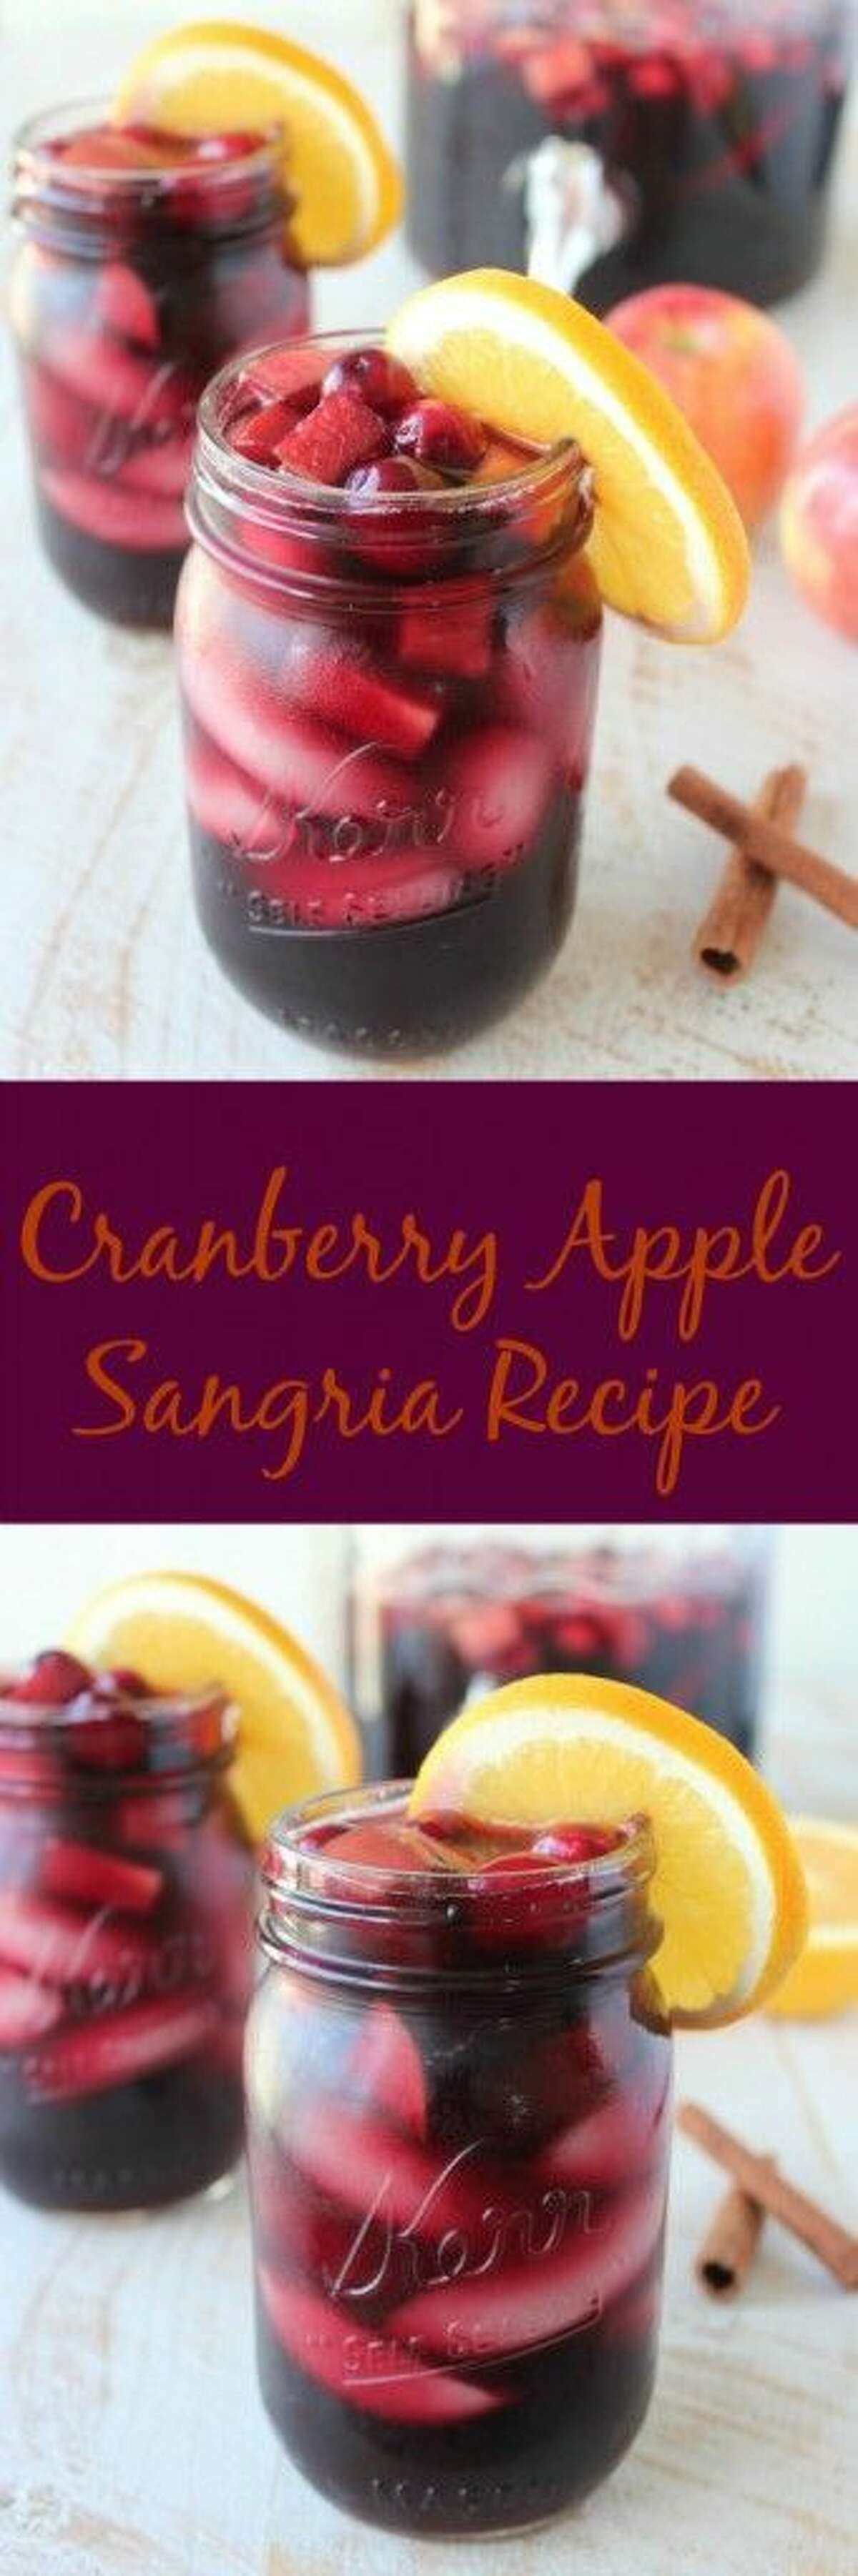 Cranberry apple sangria:Kick start any holiday party with this boozy beverage. Photo/recipe: Pinterest